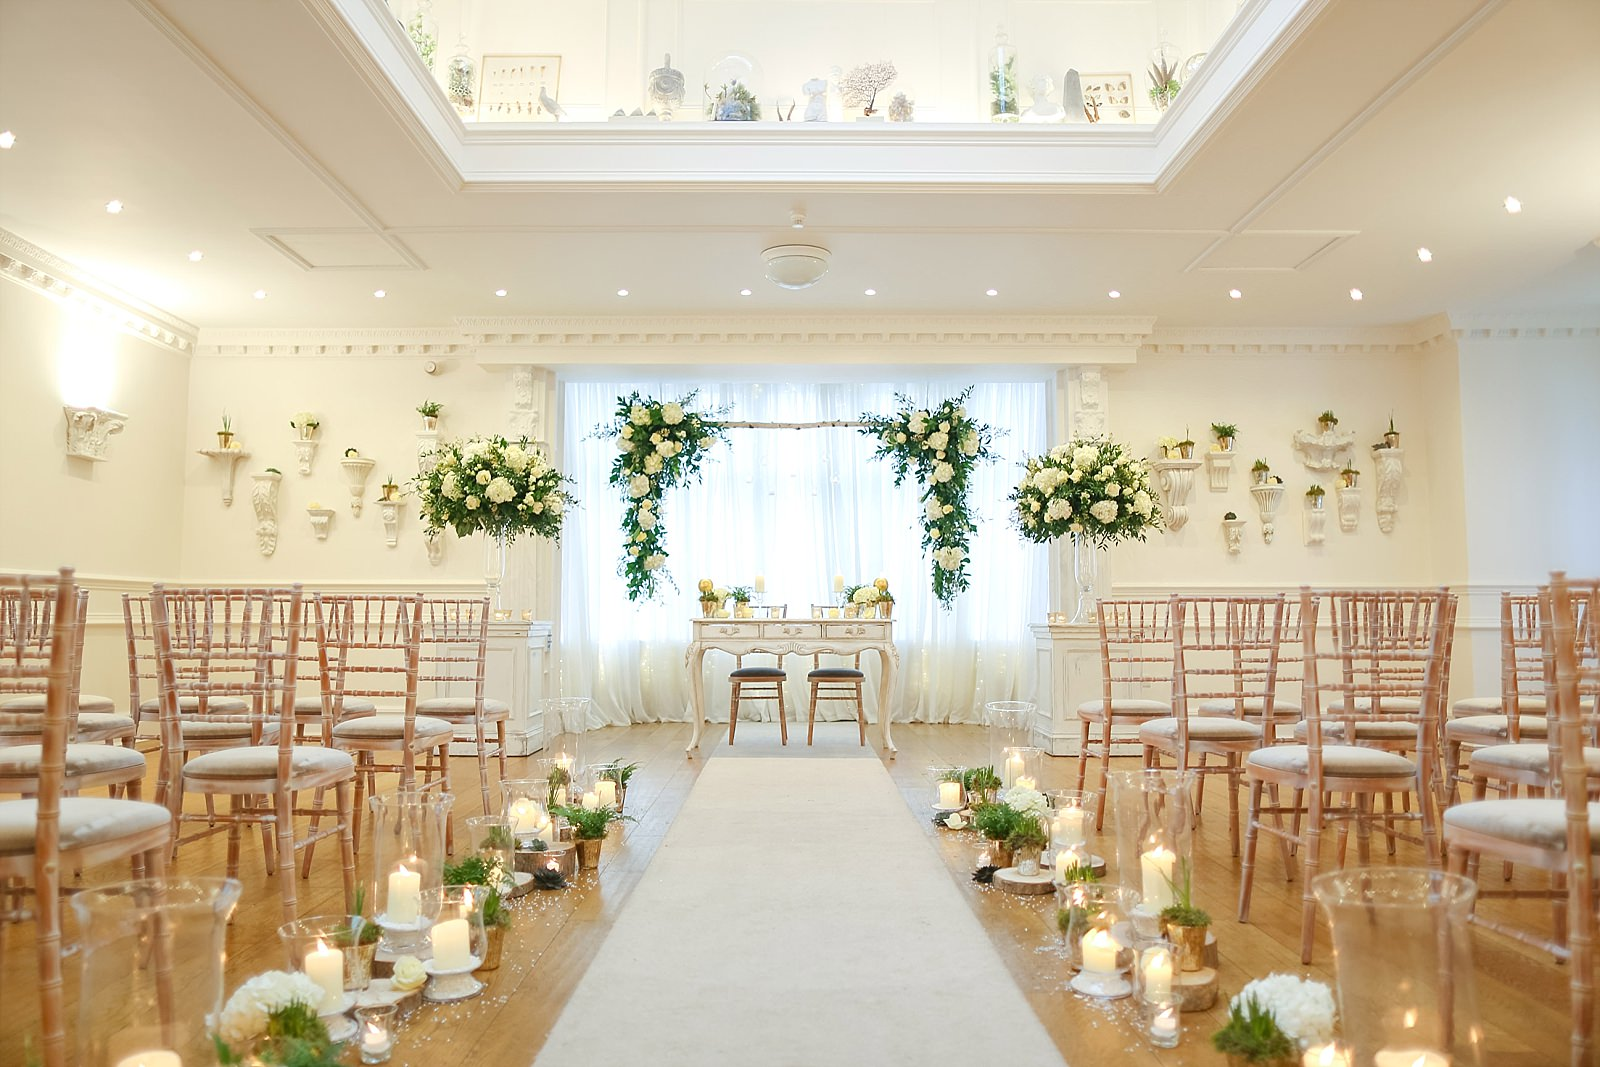 Ashfield house wedding venue ceremony room